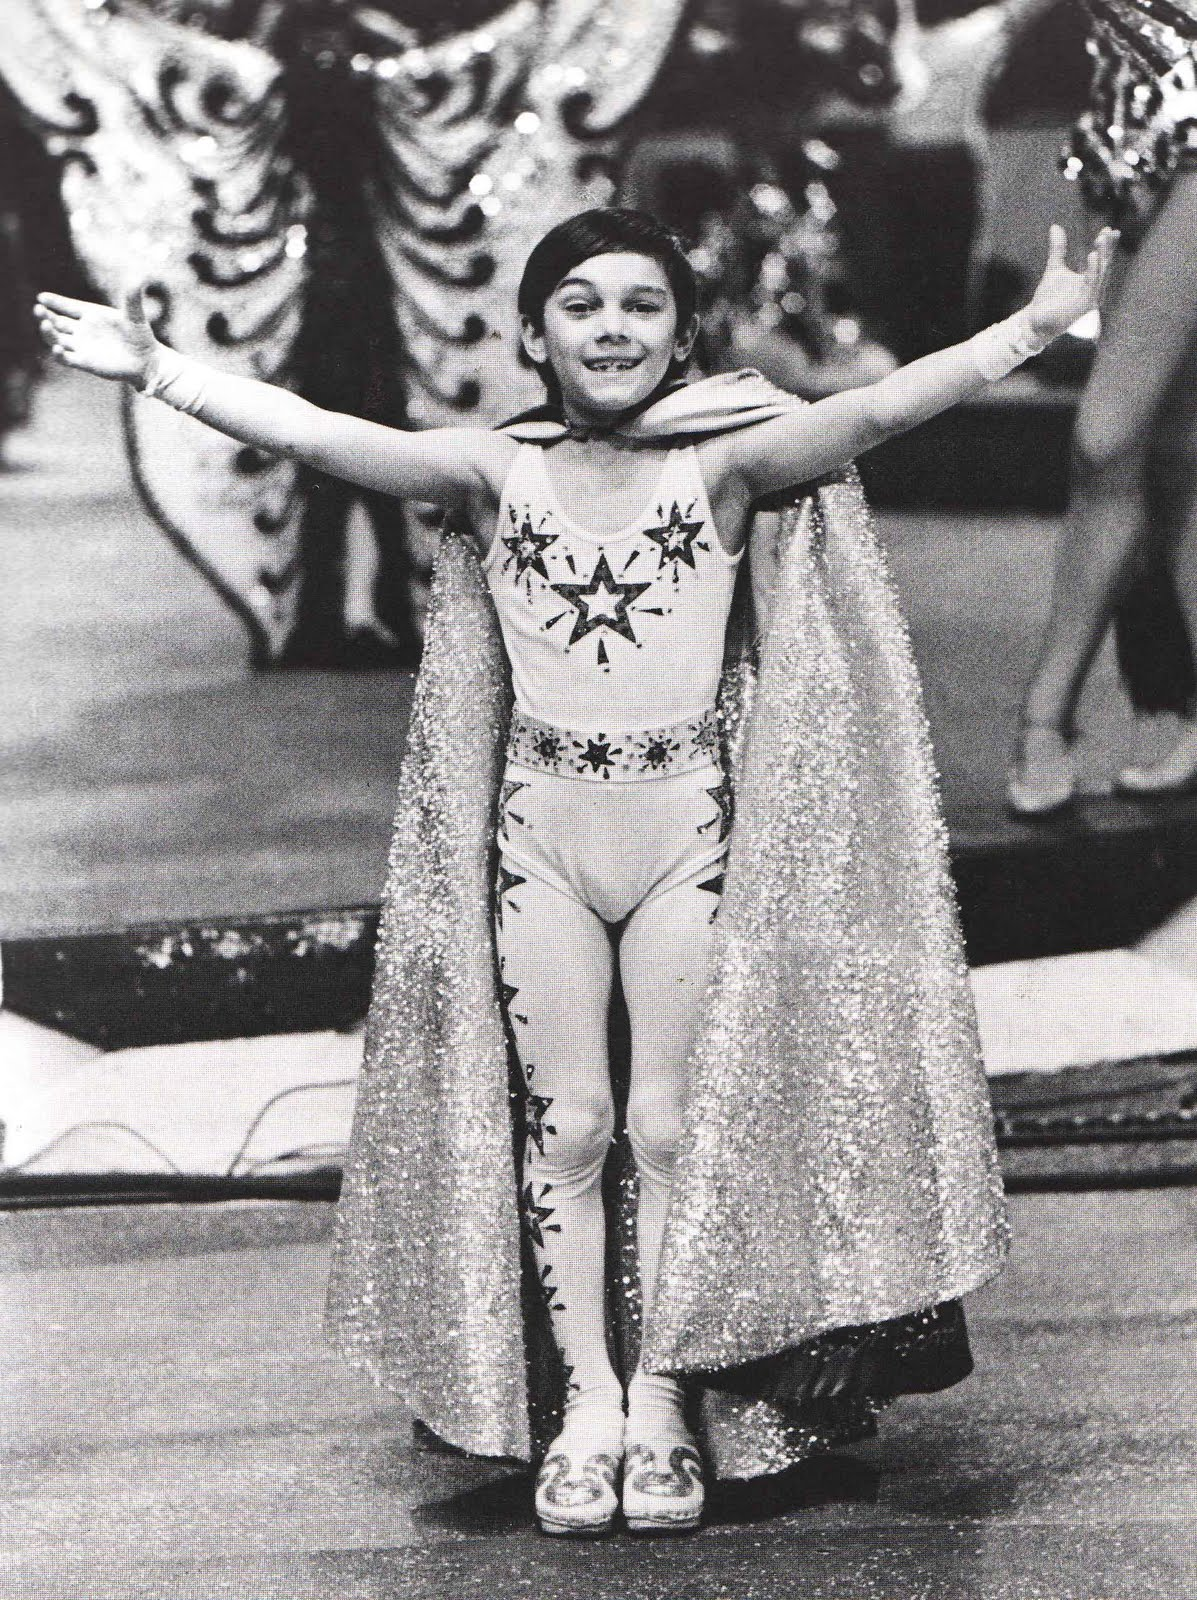 A Very Young Circus Flyer